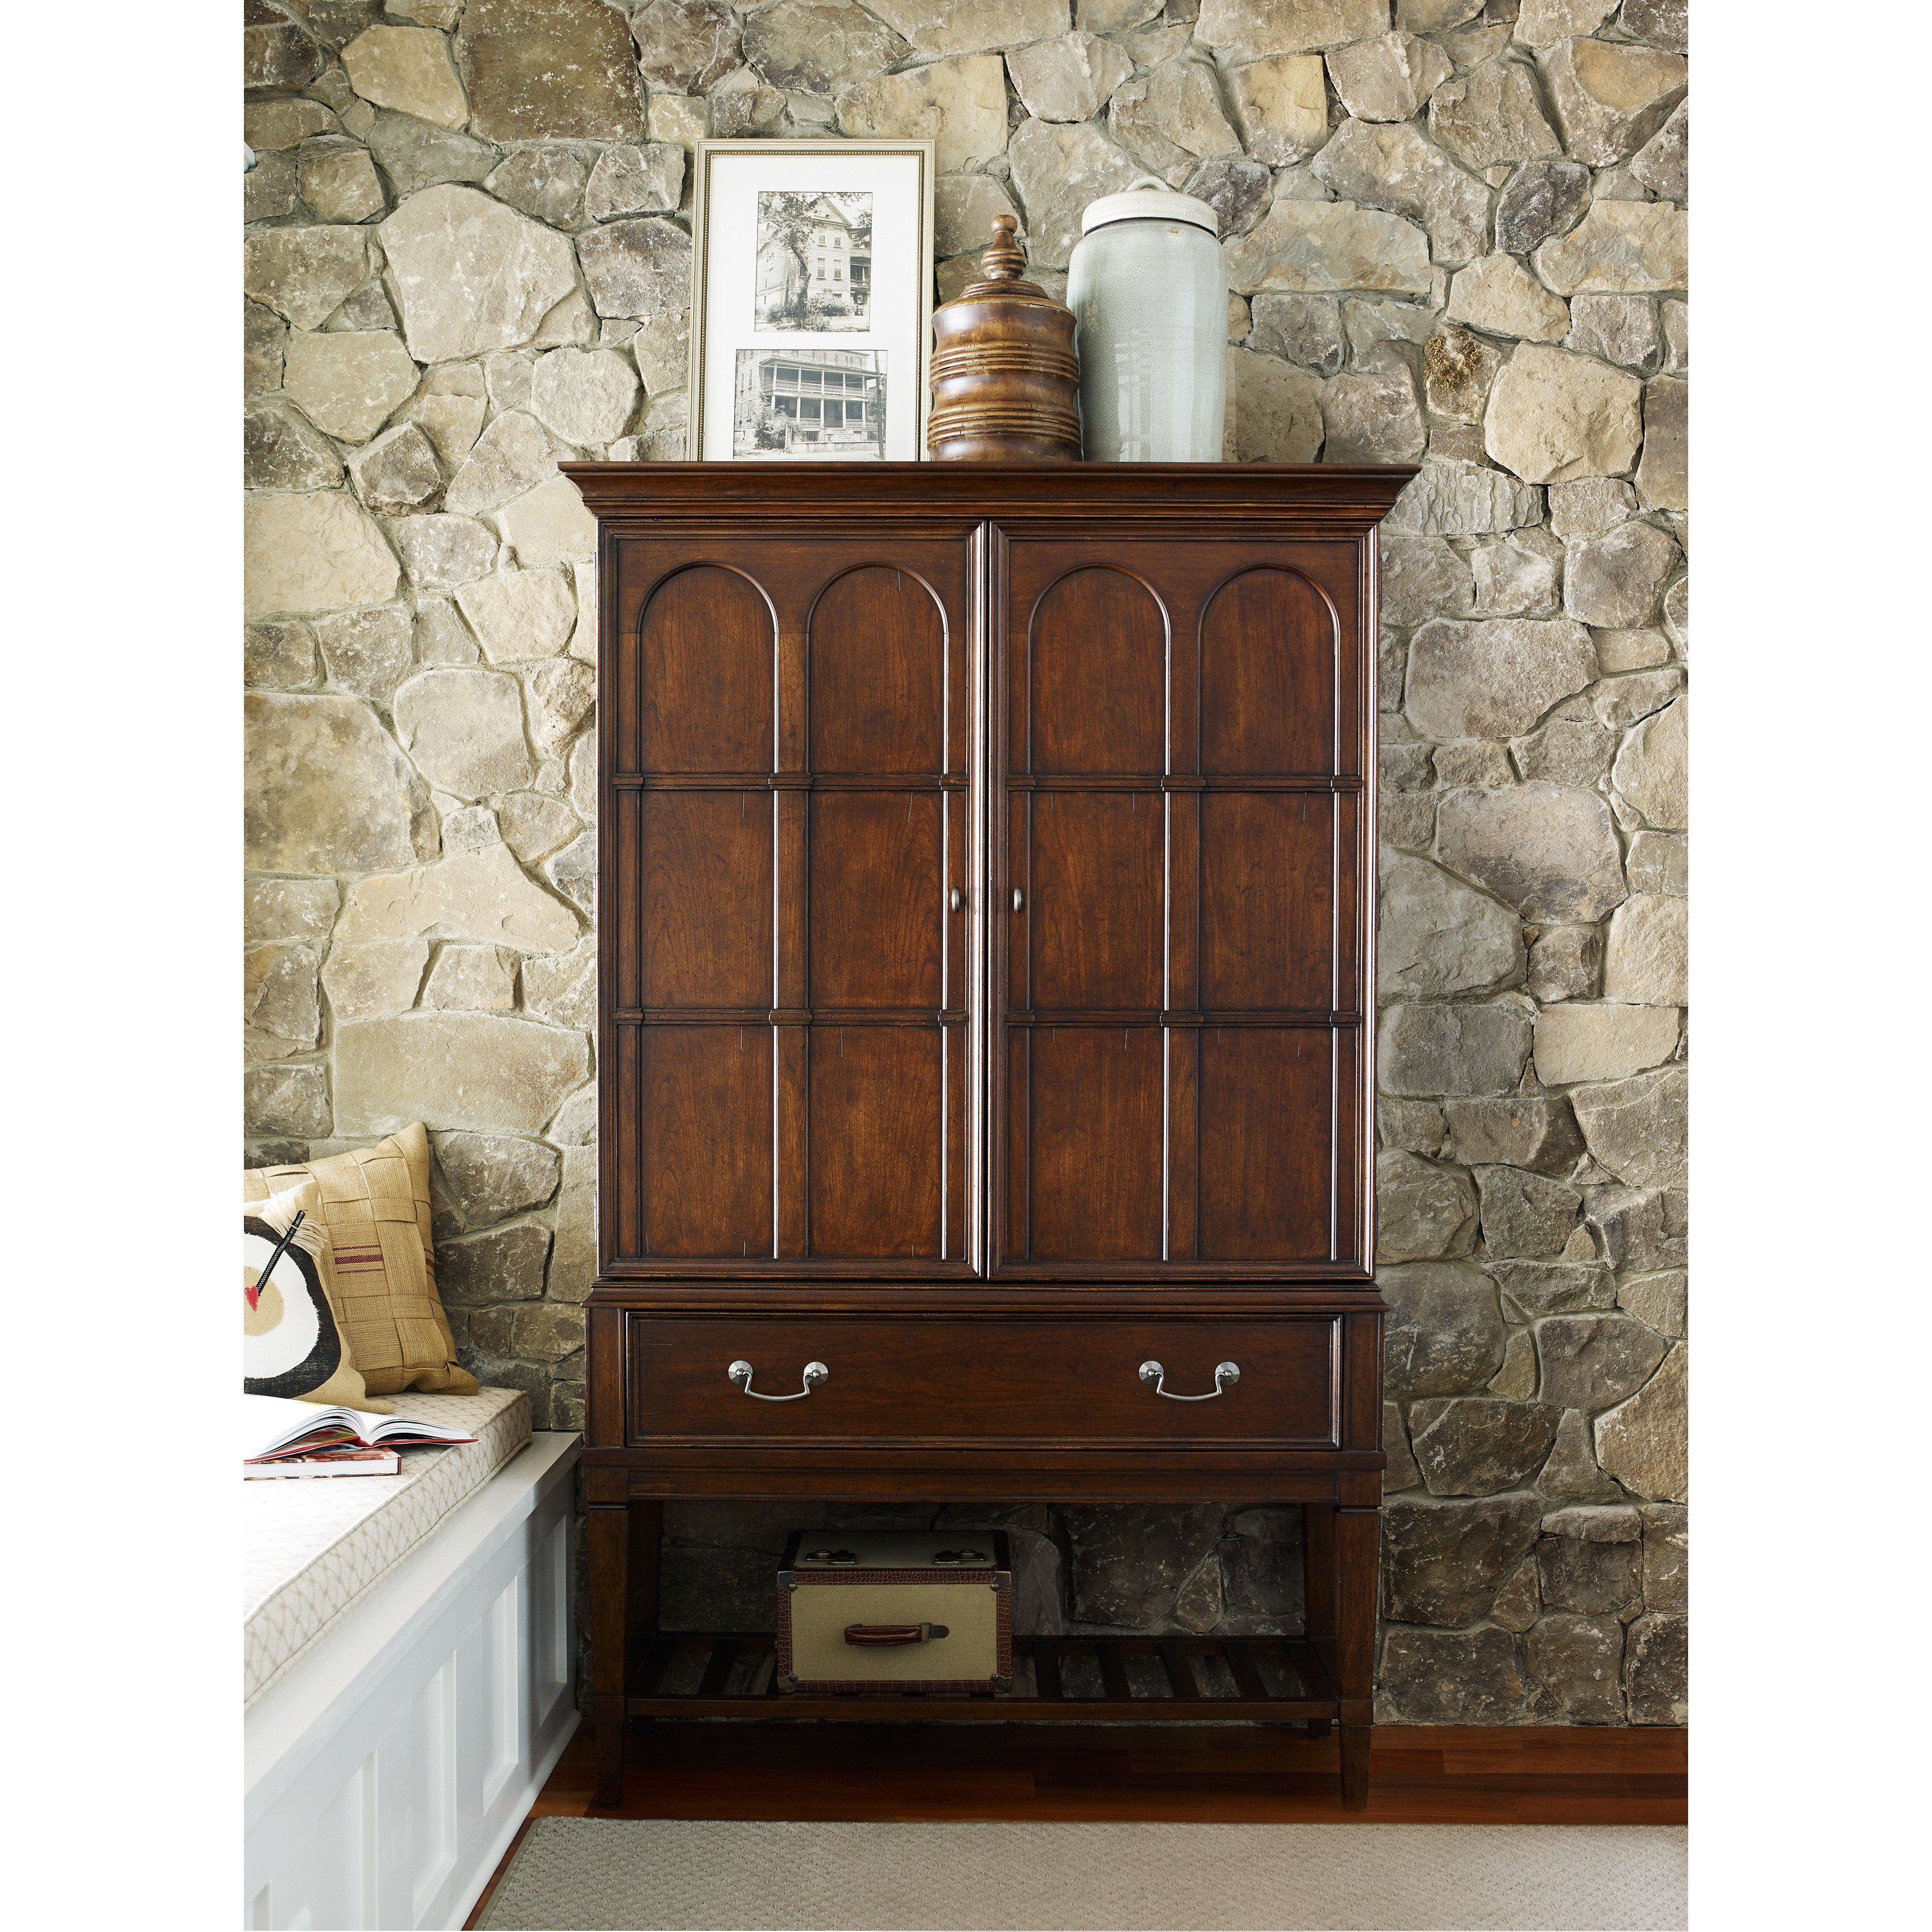 Well Liked Rachael Ray Upstatelegacy Classic Bar Cabinet – 6040 155 Within Arminta Wood Sideboards (View 9 of 20)